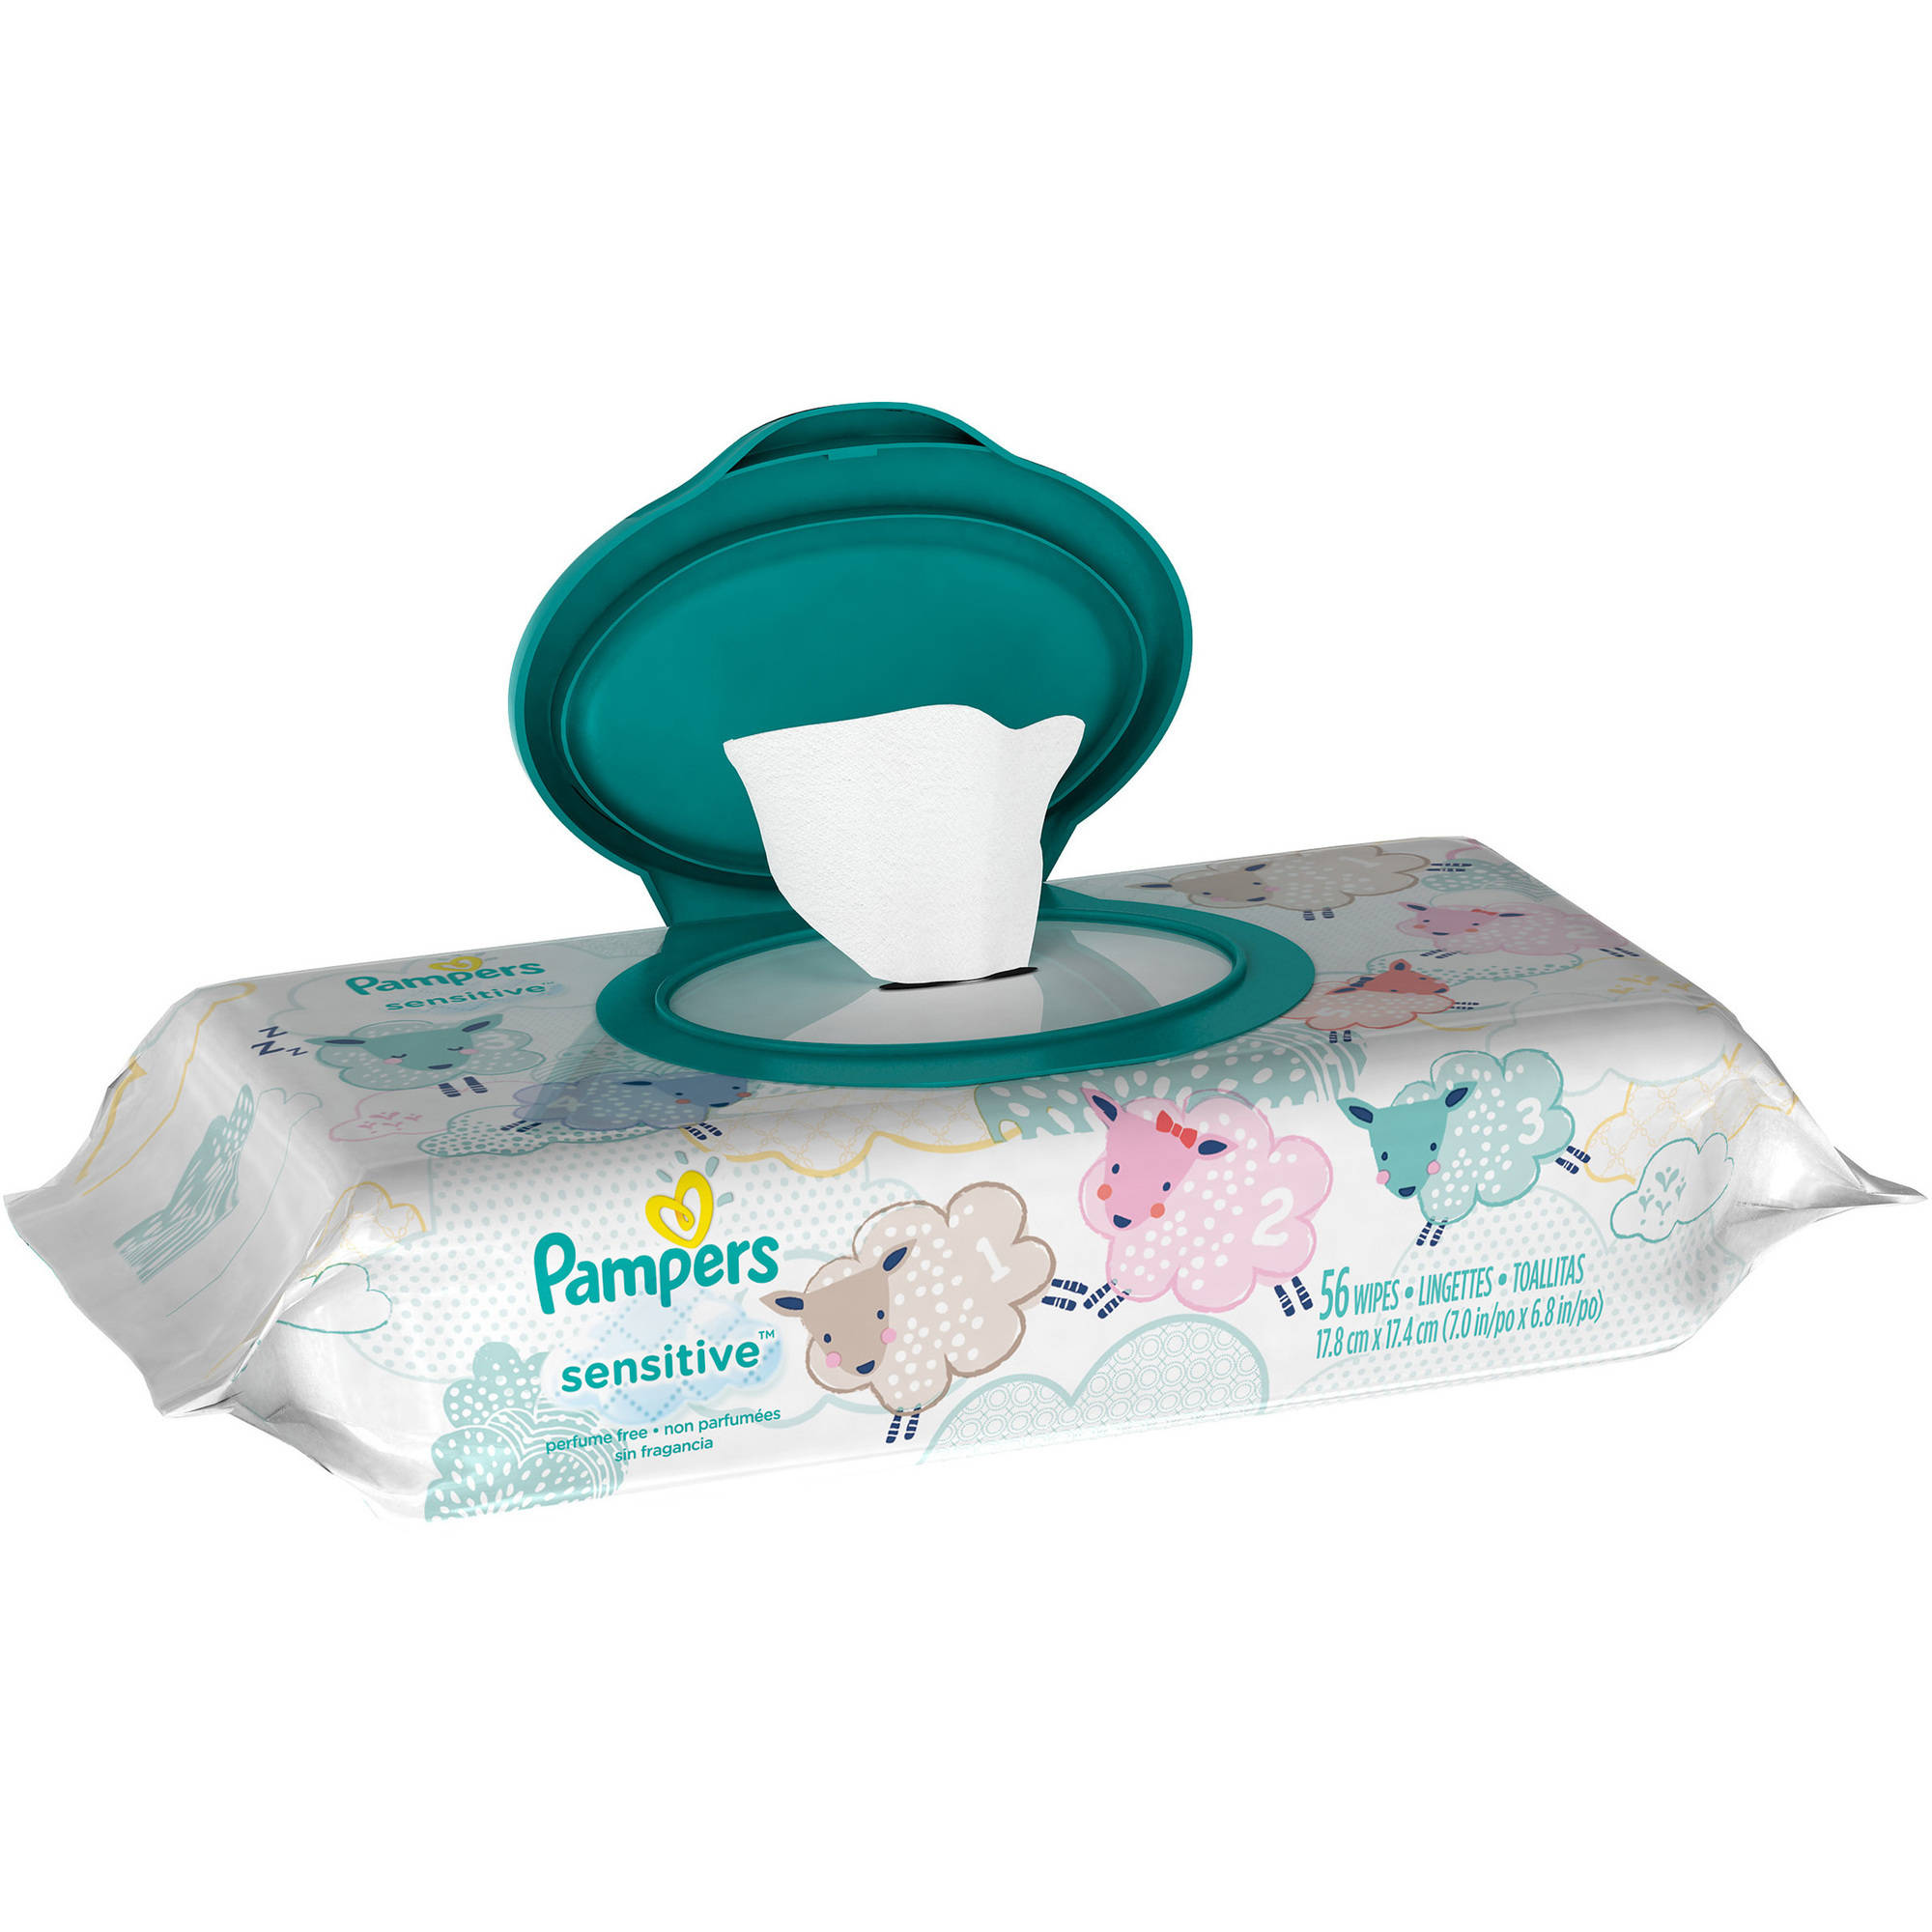 Pampers Sensitive Baby Wipes, 56 sheets